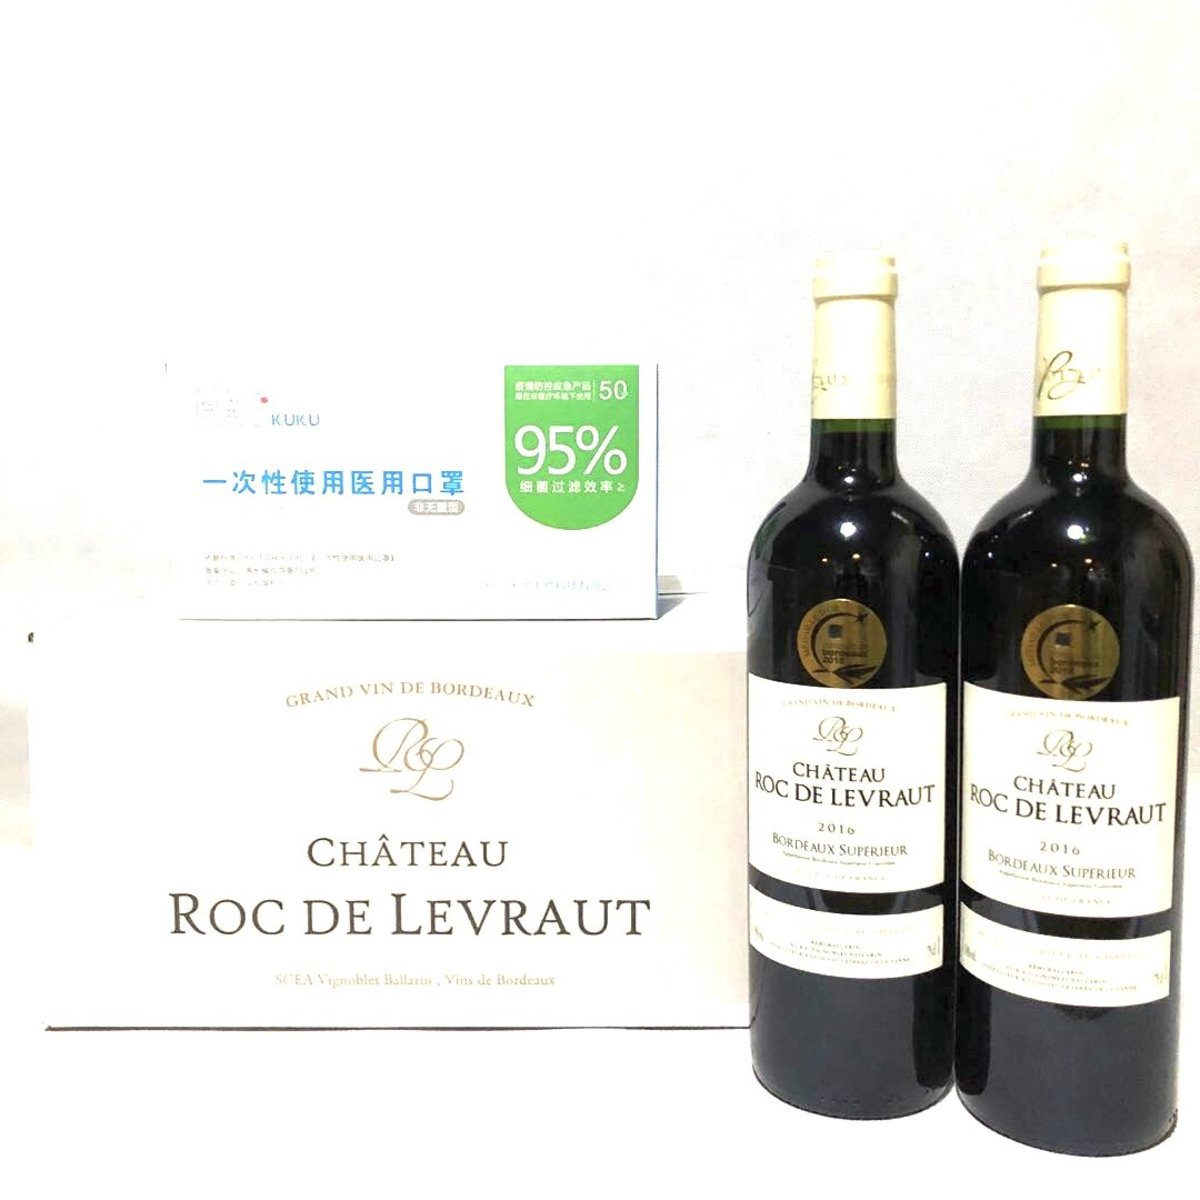 Ch Roc de Levraut Bordeaux  Superieur 2016 + Happy抗疫套裝(優惠贈品口罩50個)